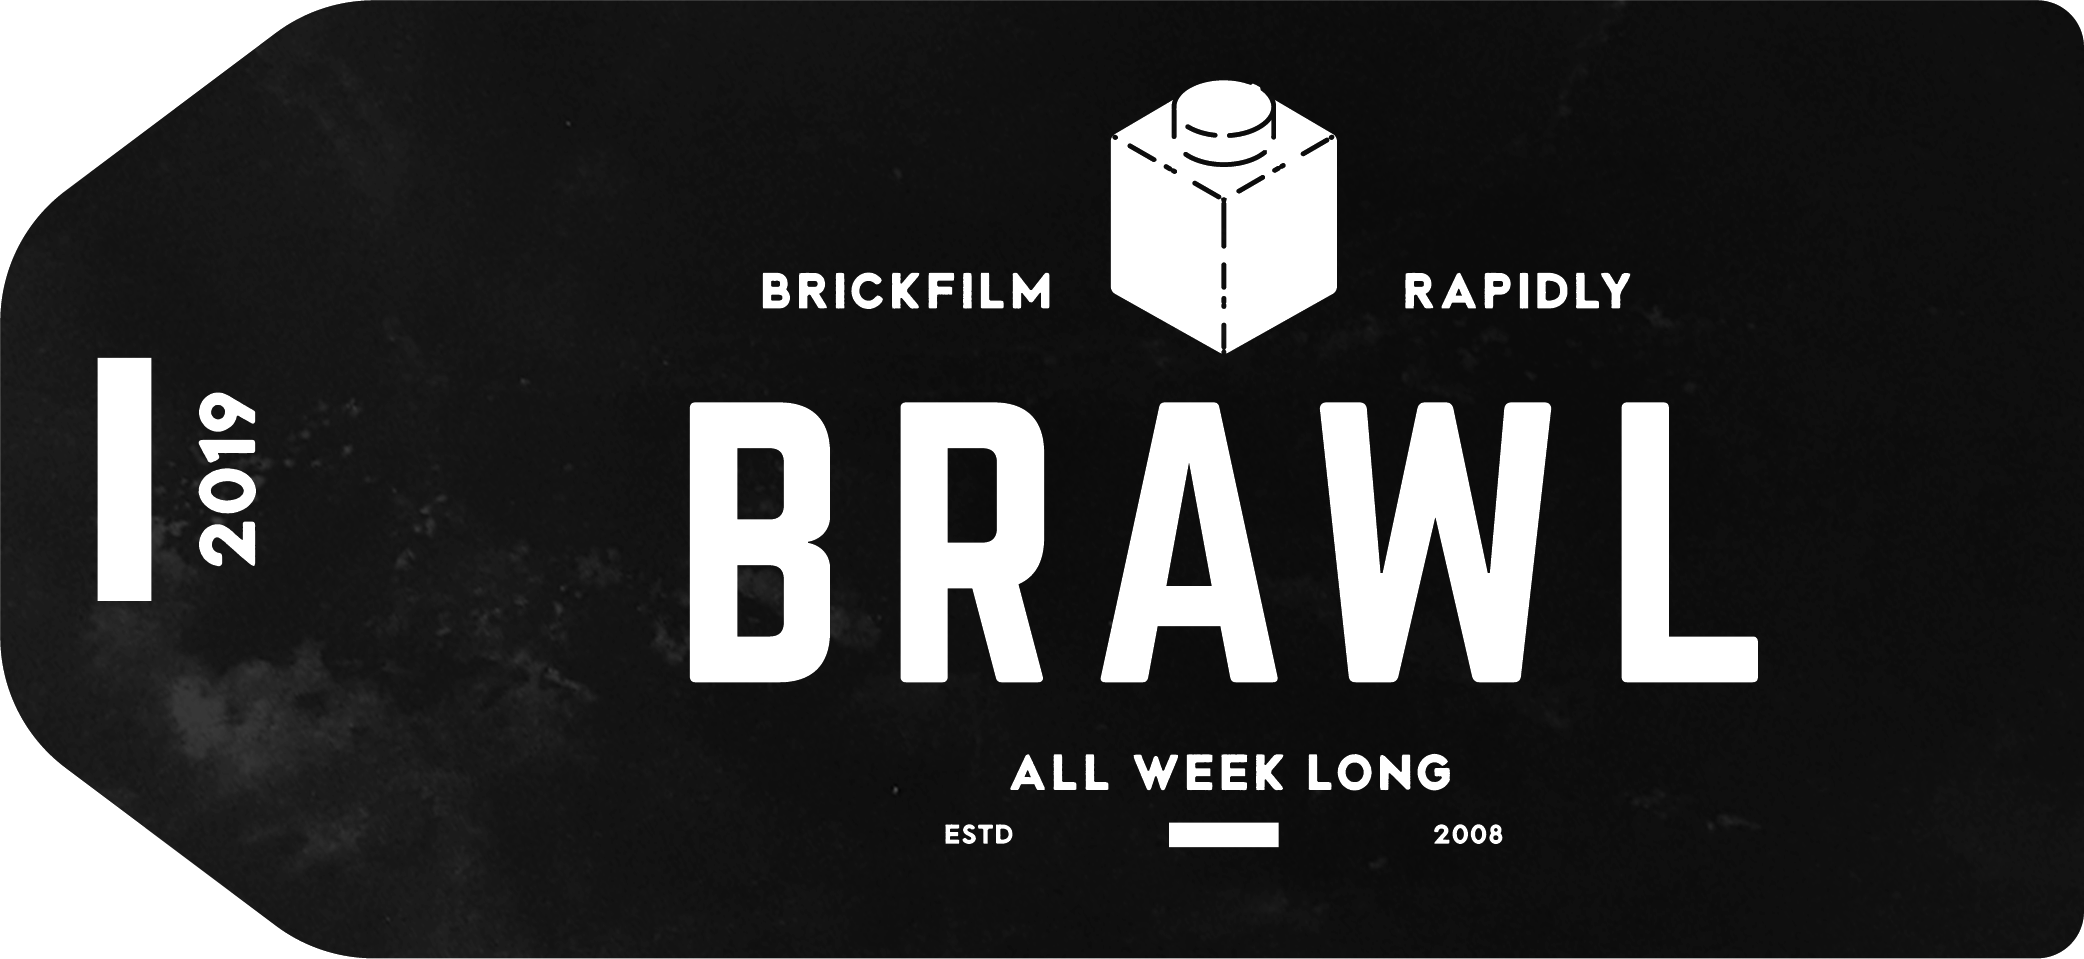 https://bricksinmotion.com/images/contests/BRAWL/BRAWL2019Logo.png